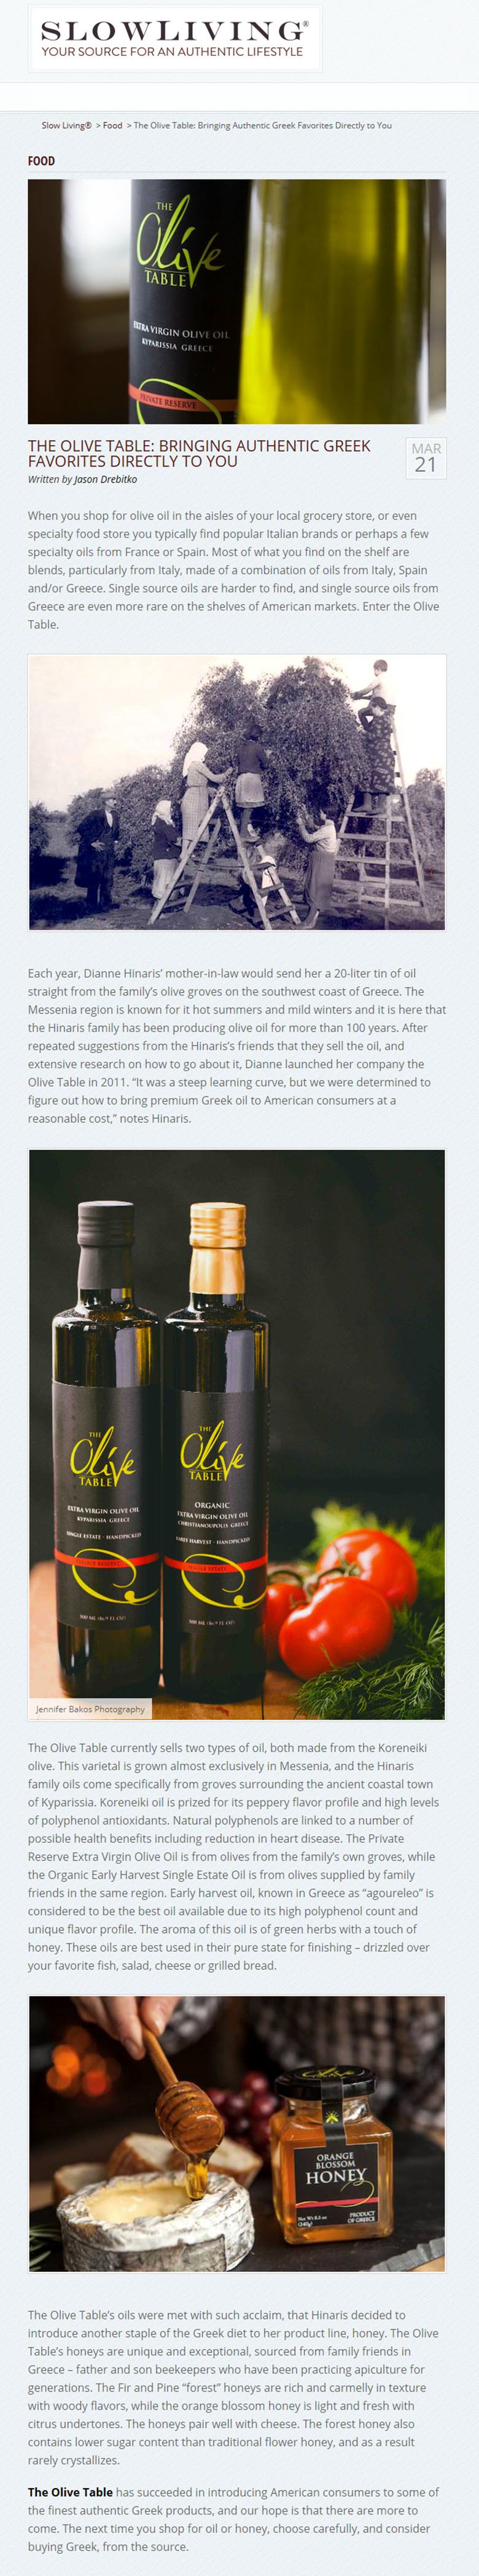 Olive-Table-Slow-Living-Article